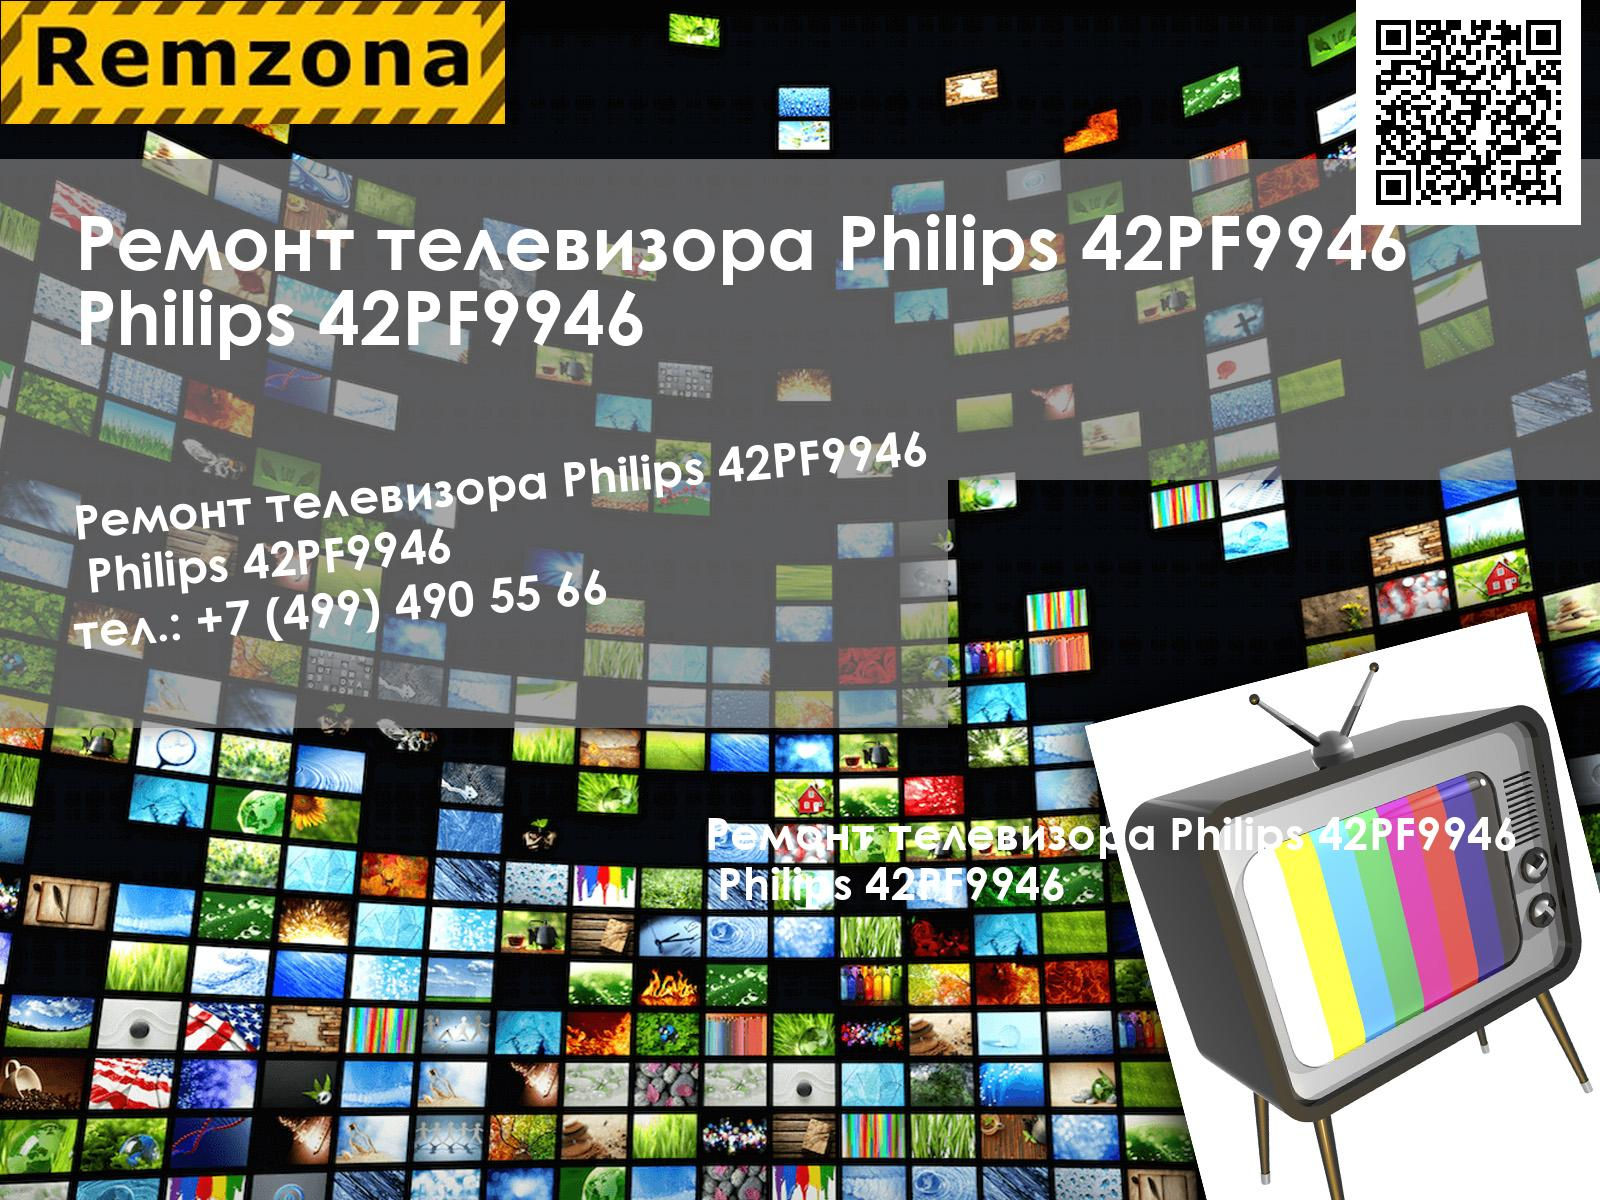 Ремонт телевизора Philips 42PF9946